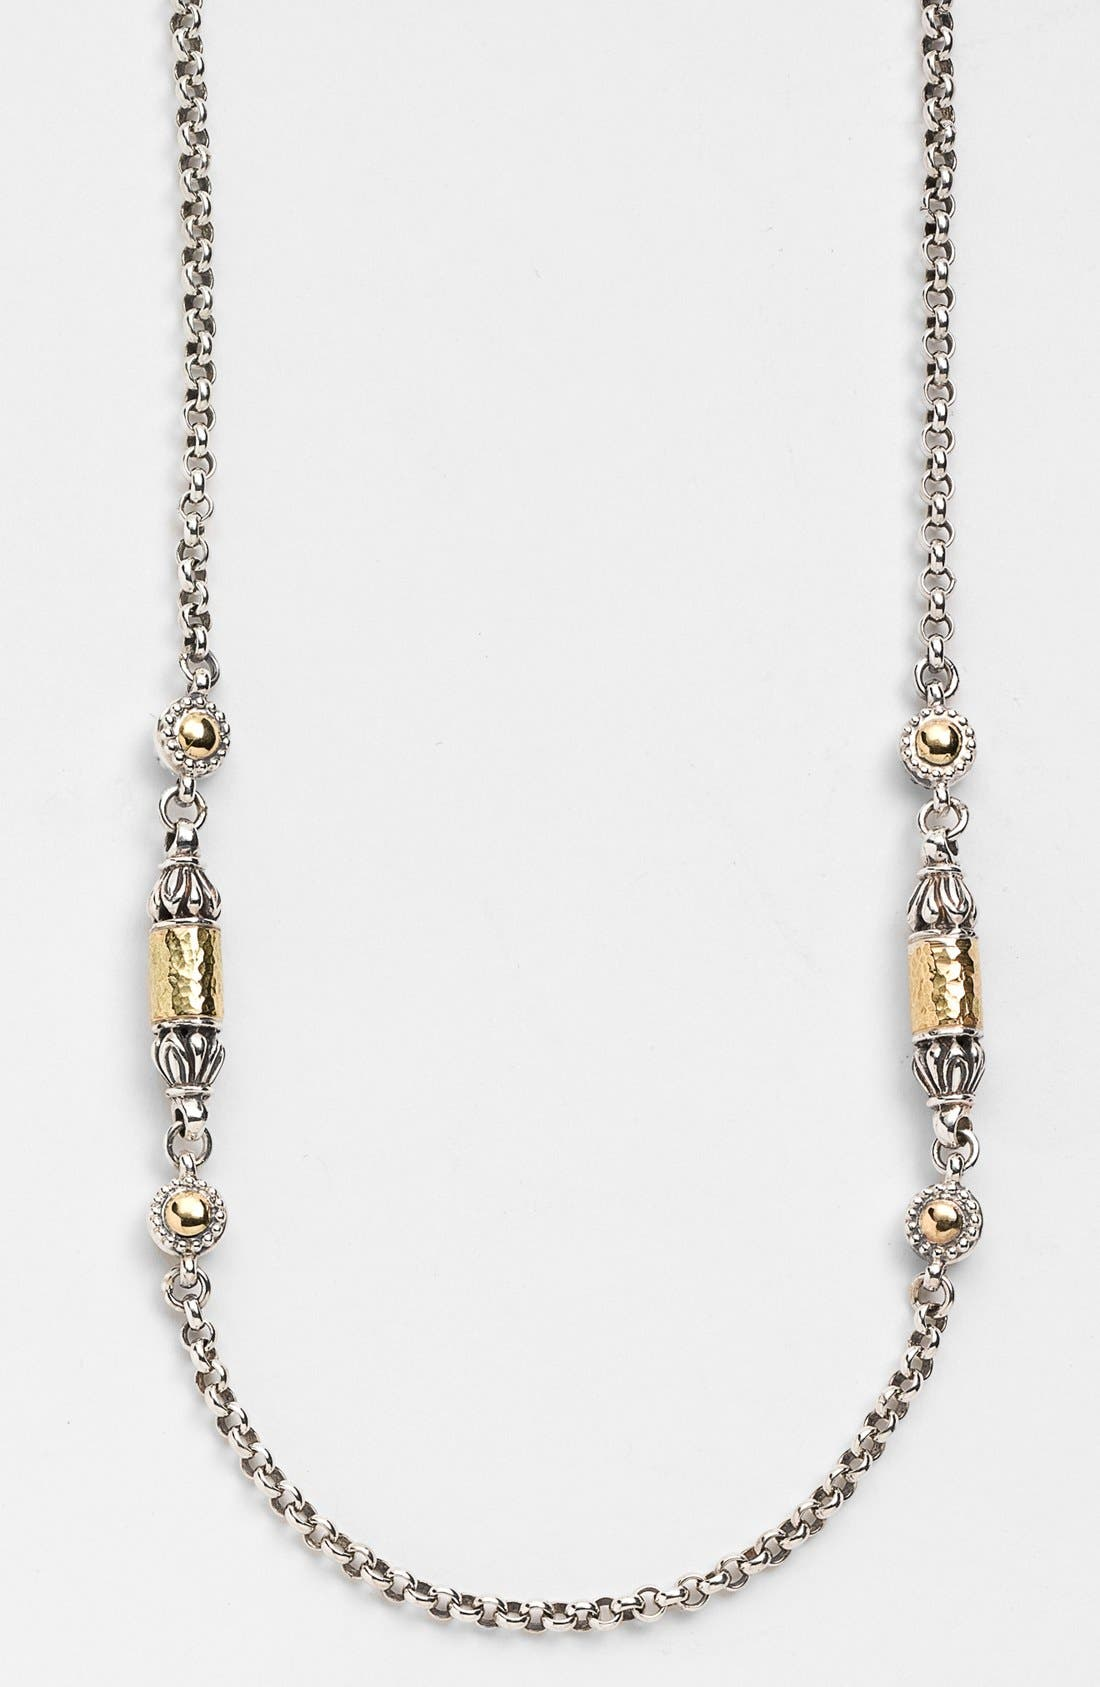 Konstantino 'Classics' Two-Tone Hammered Station Necklace